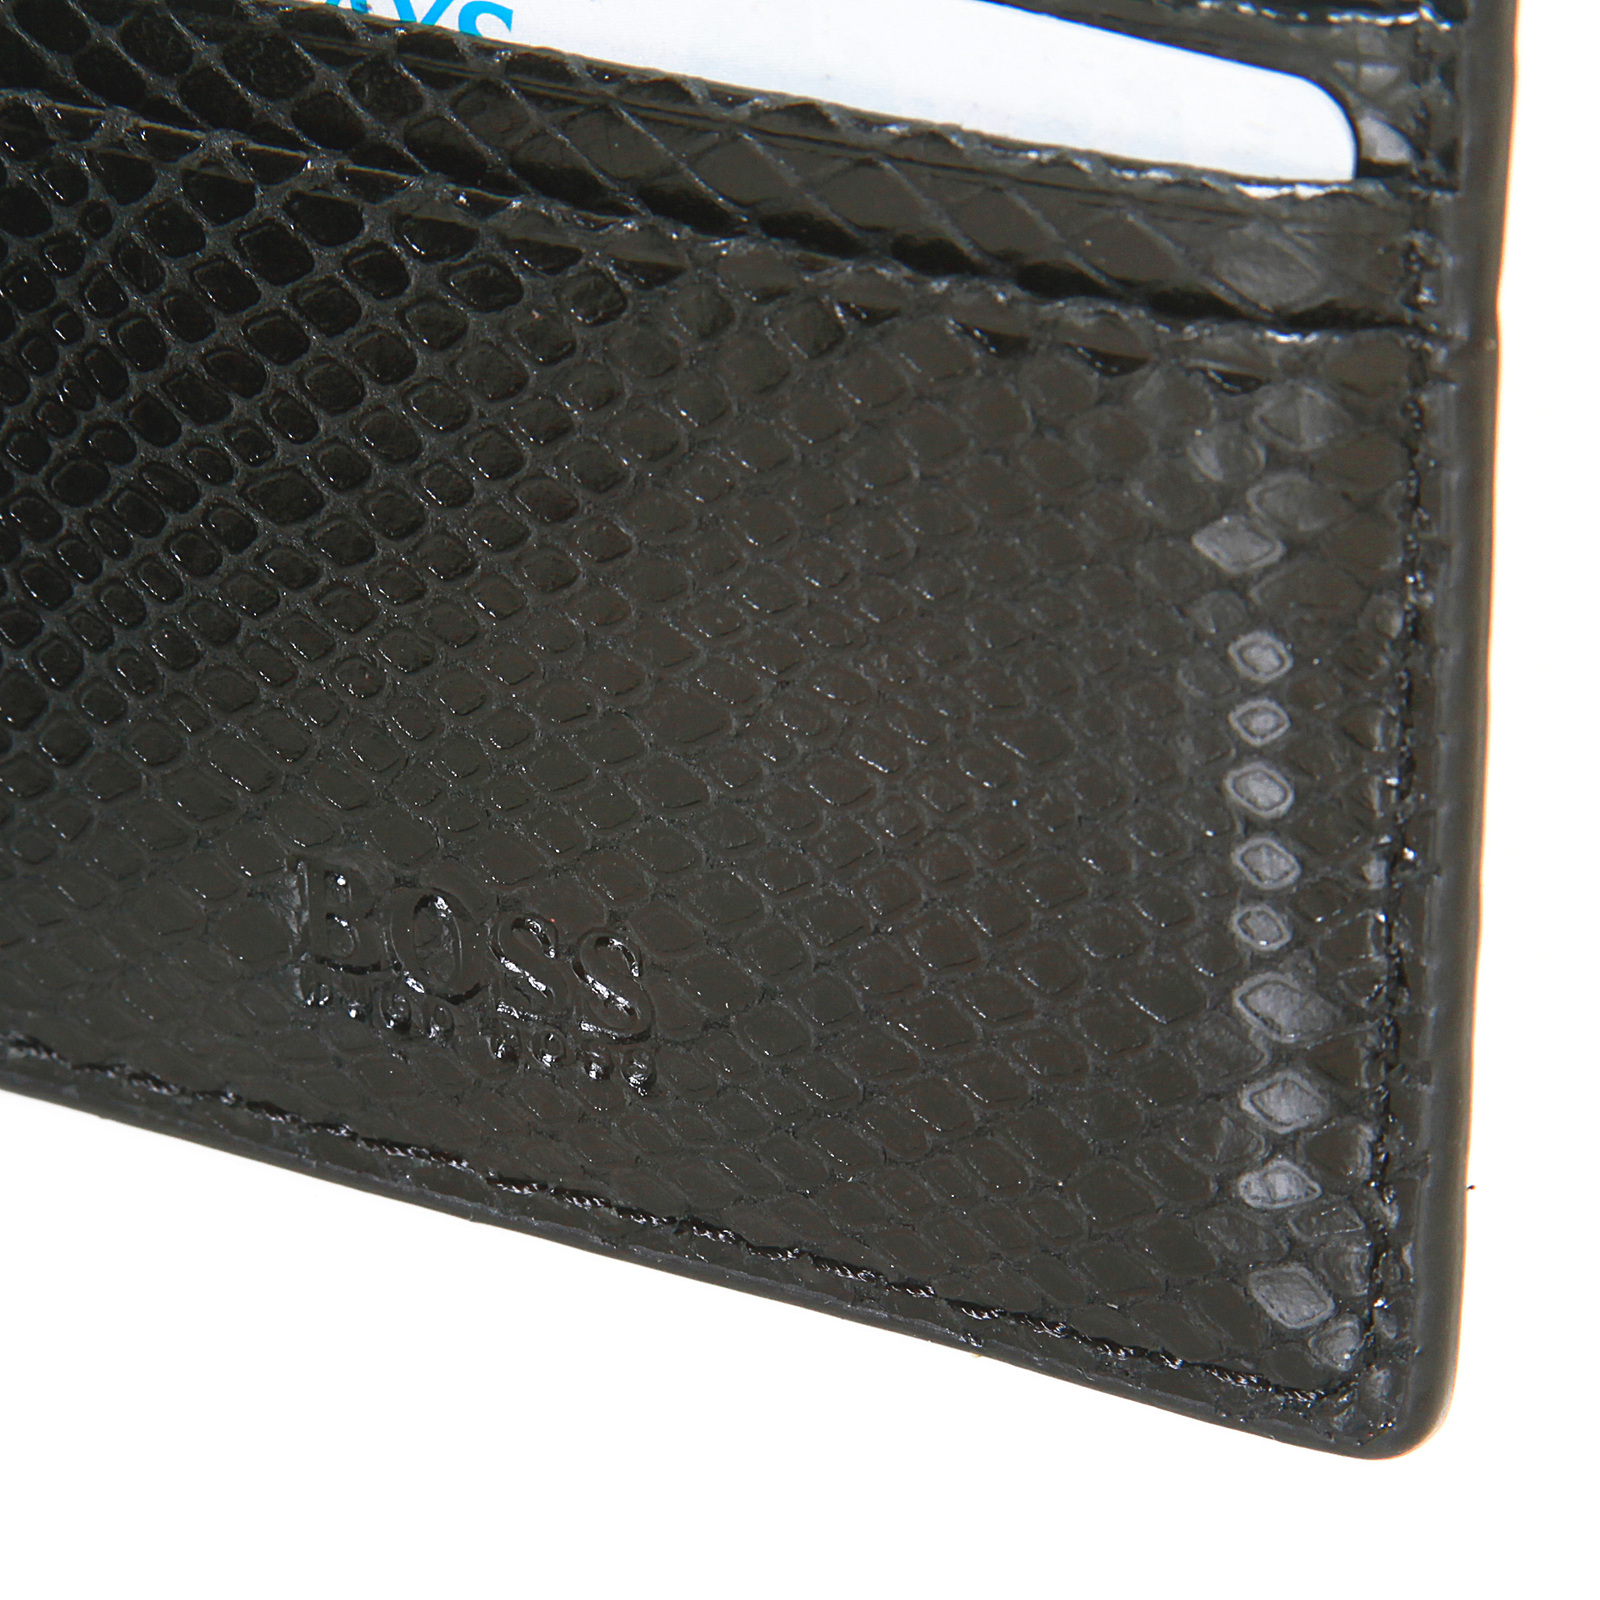 Boss Black Geobix boxed wallet and ID credit card holder gift set ...